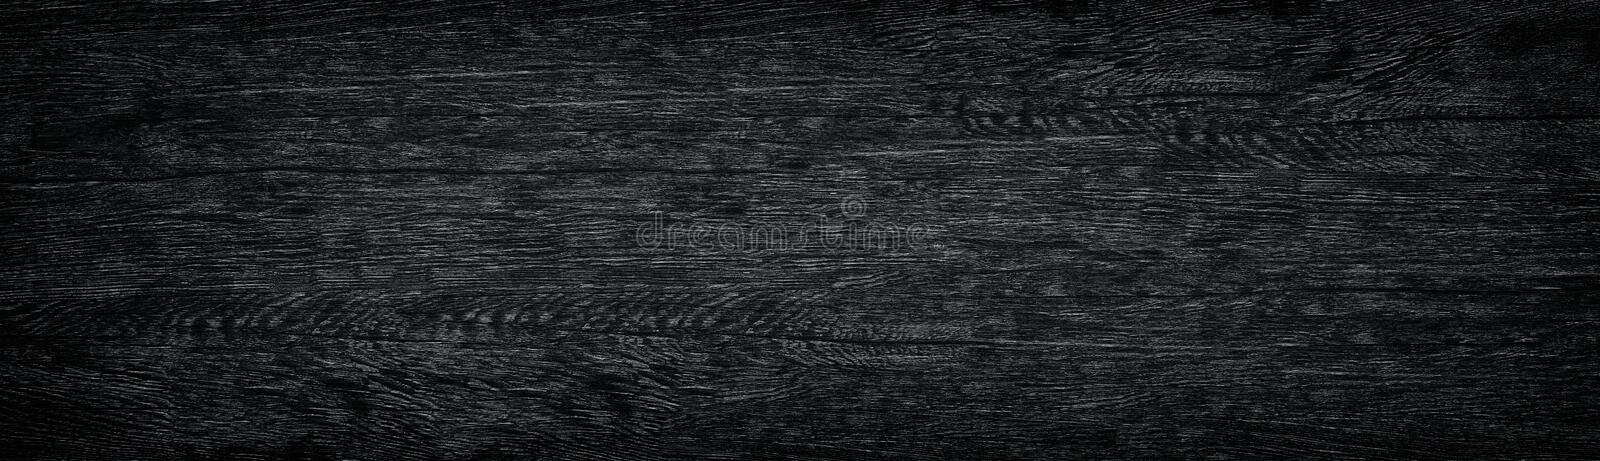 Black grain wooden panoramic texture. Dark long wood background royalty free stock images